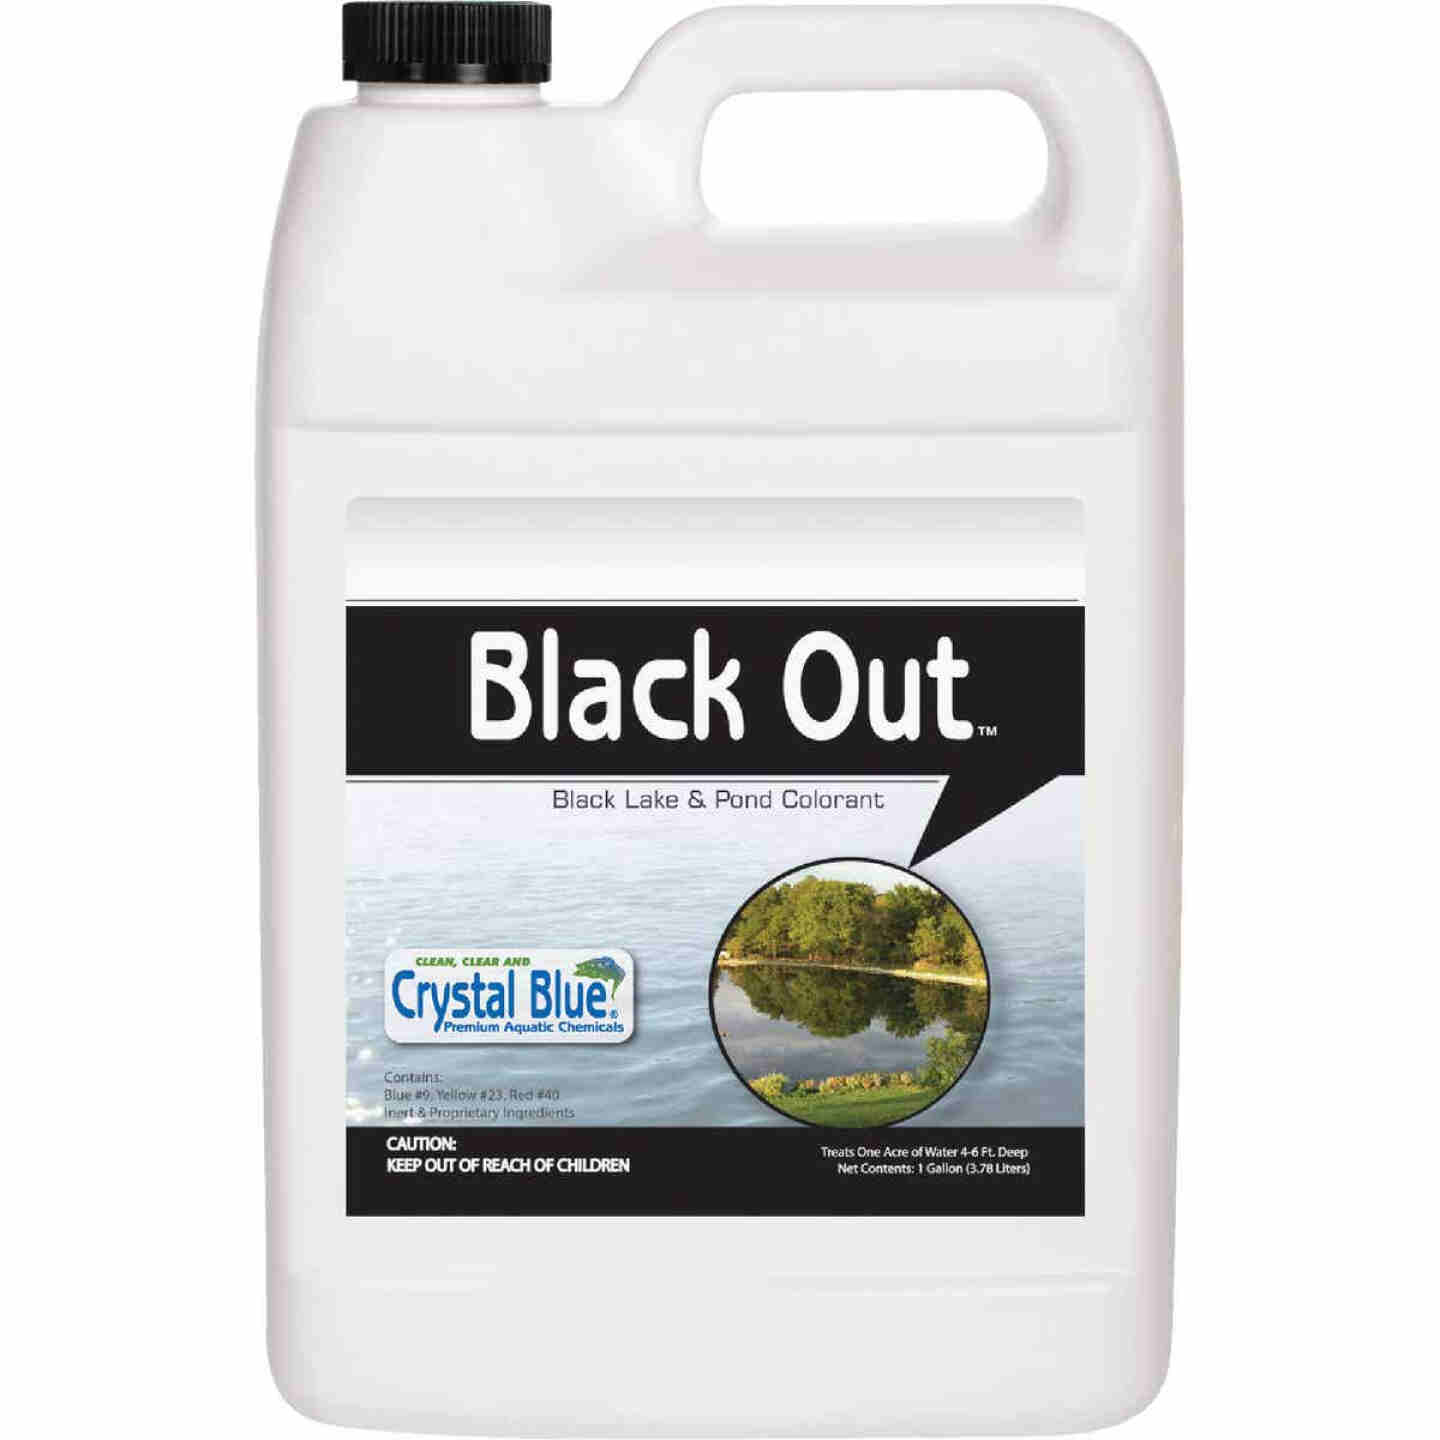 Black Out 1 Gal. 1-Acre Reflective Lake & Pond Colorant Image 1